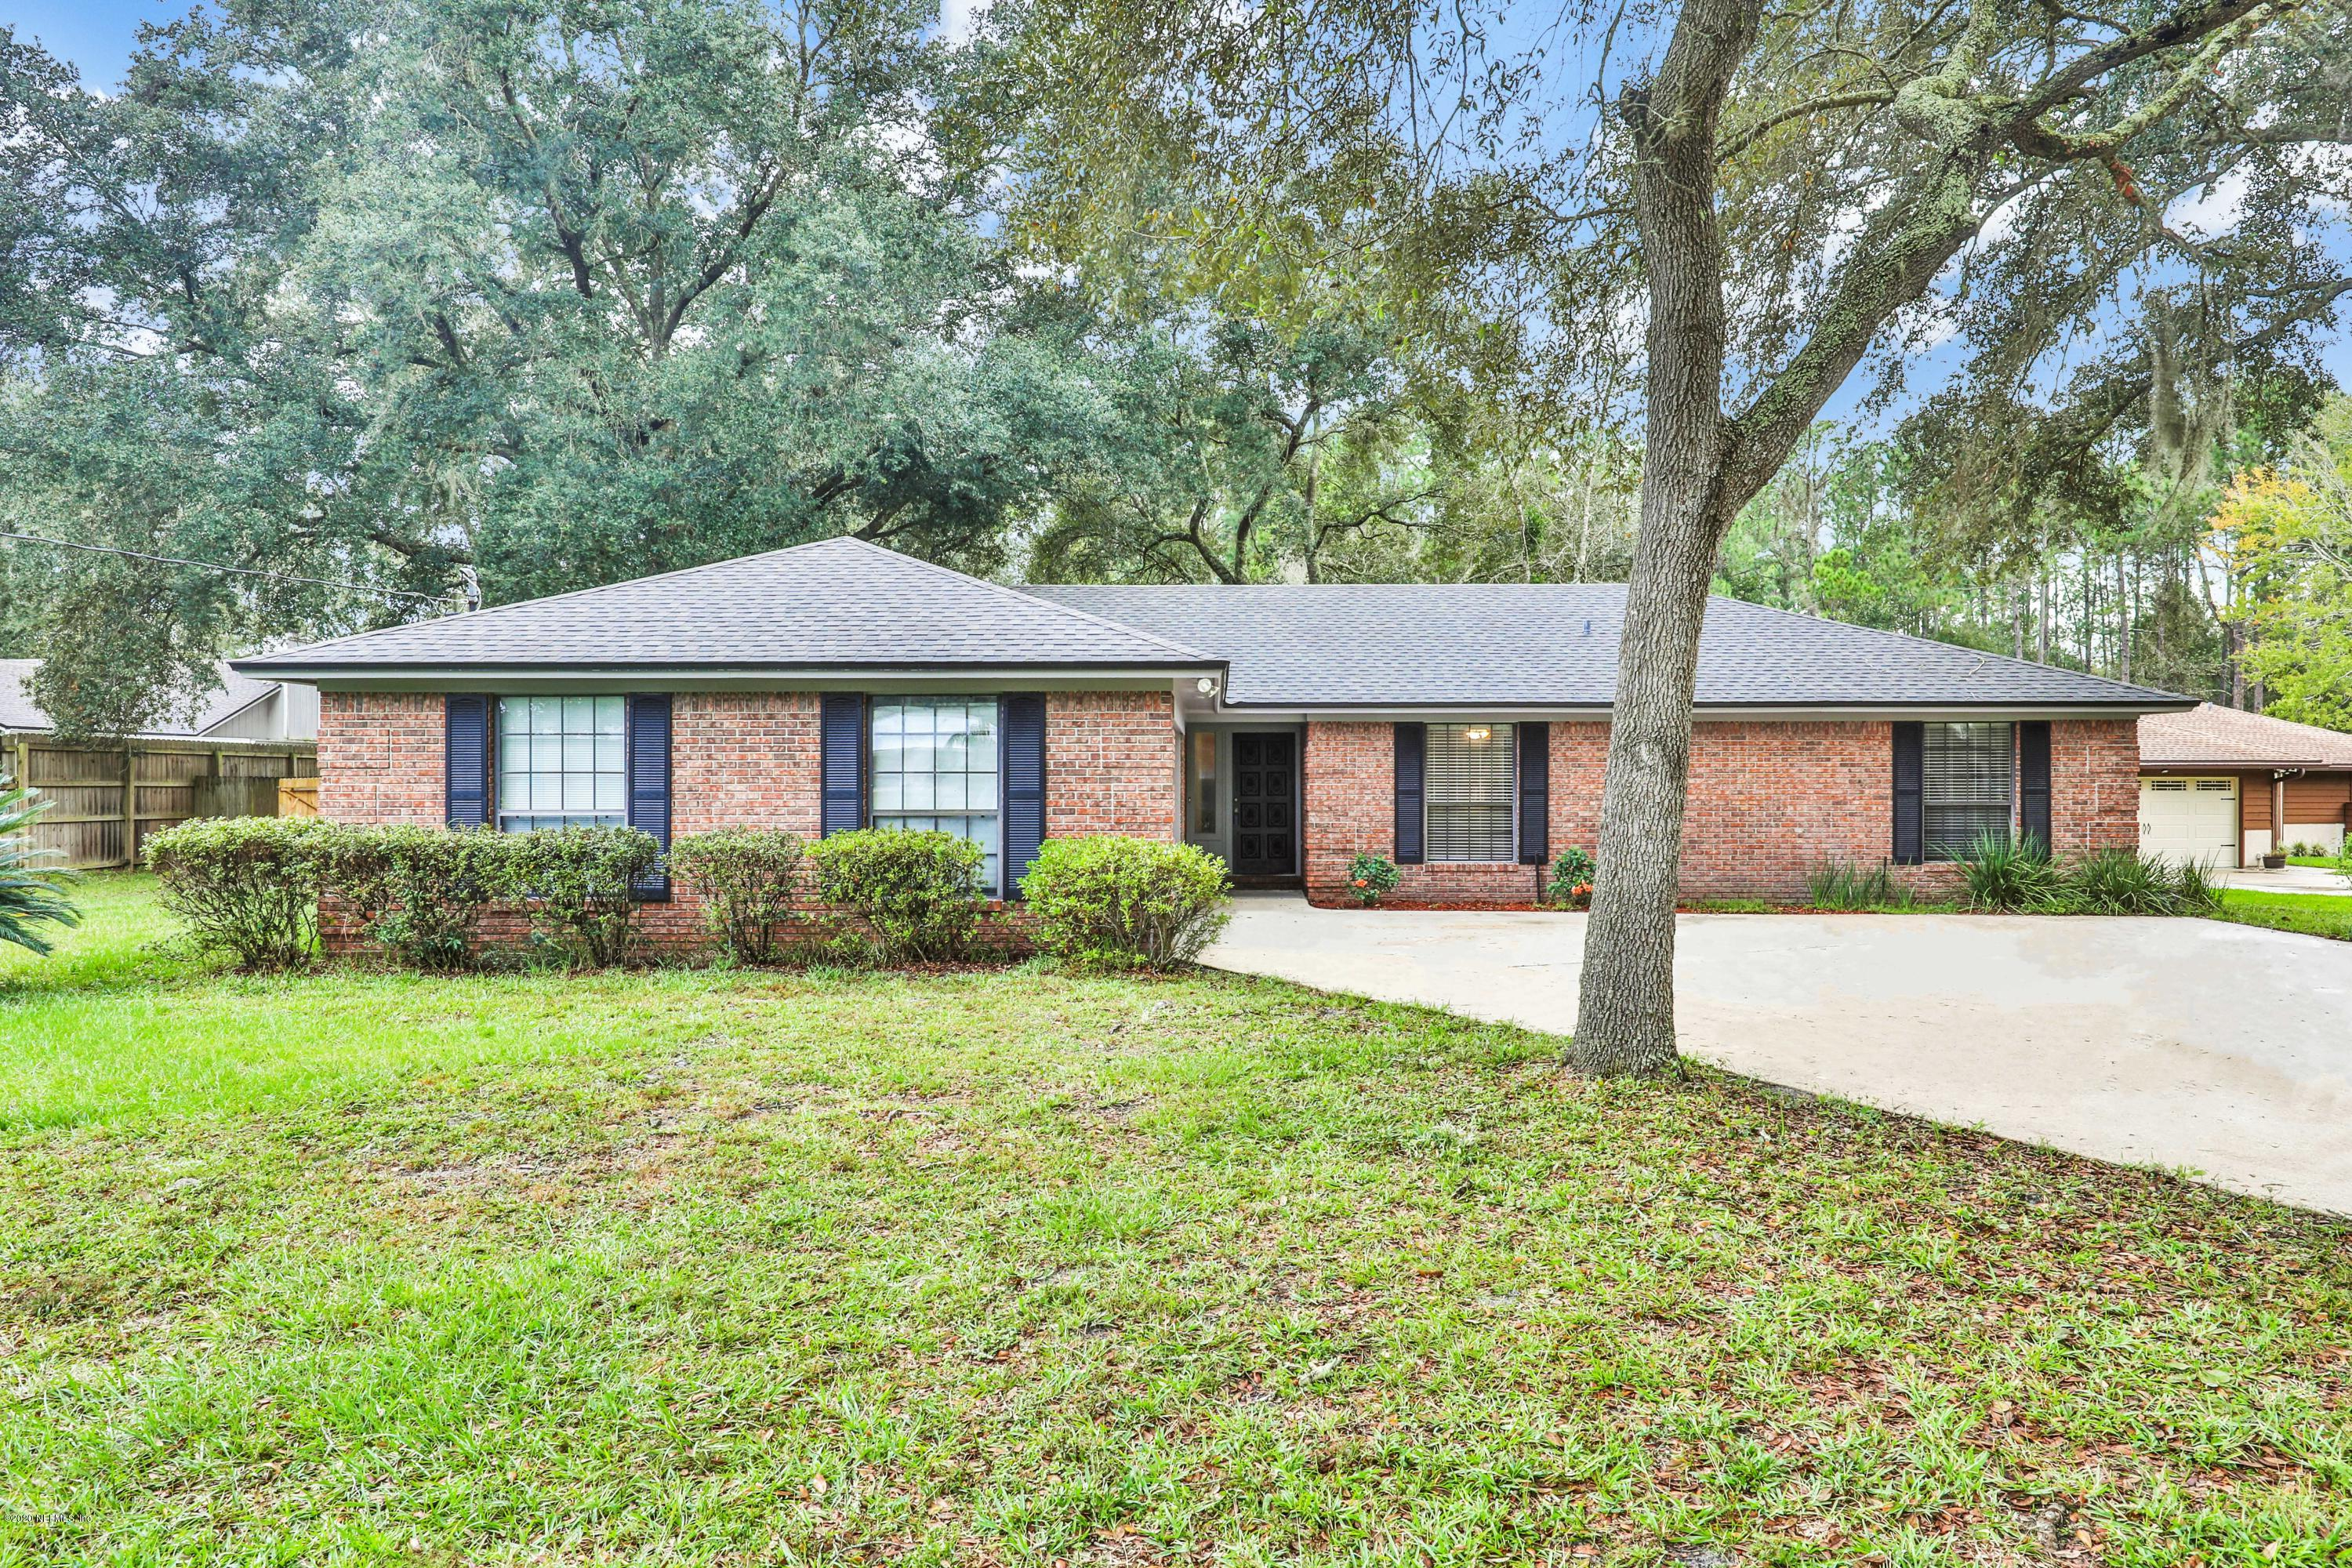 1250 MORNING DOVE, ST JOHNS, FLORIDA 32259, 3 Bedrooms Bedrooms, ,2 BathroomsBathrooms,Residential,For sale,MORNING DOVE,1082490